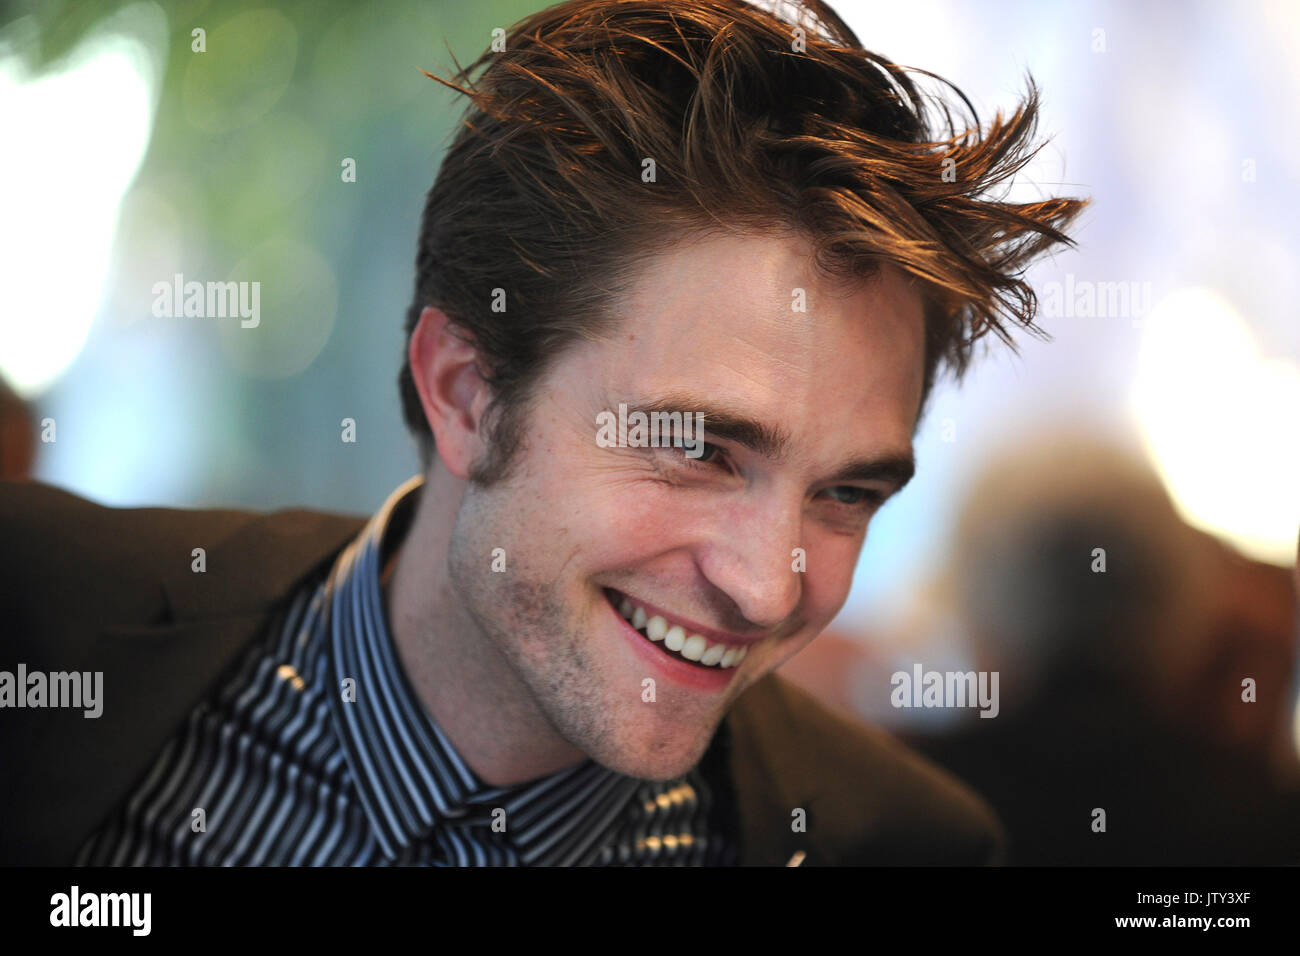 Robert Pattinson besucht die New Yorker Premiere von 'gute Zeit' in der sva Theater am 8. August 2017 in New York City. Stockbild